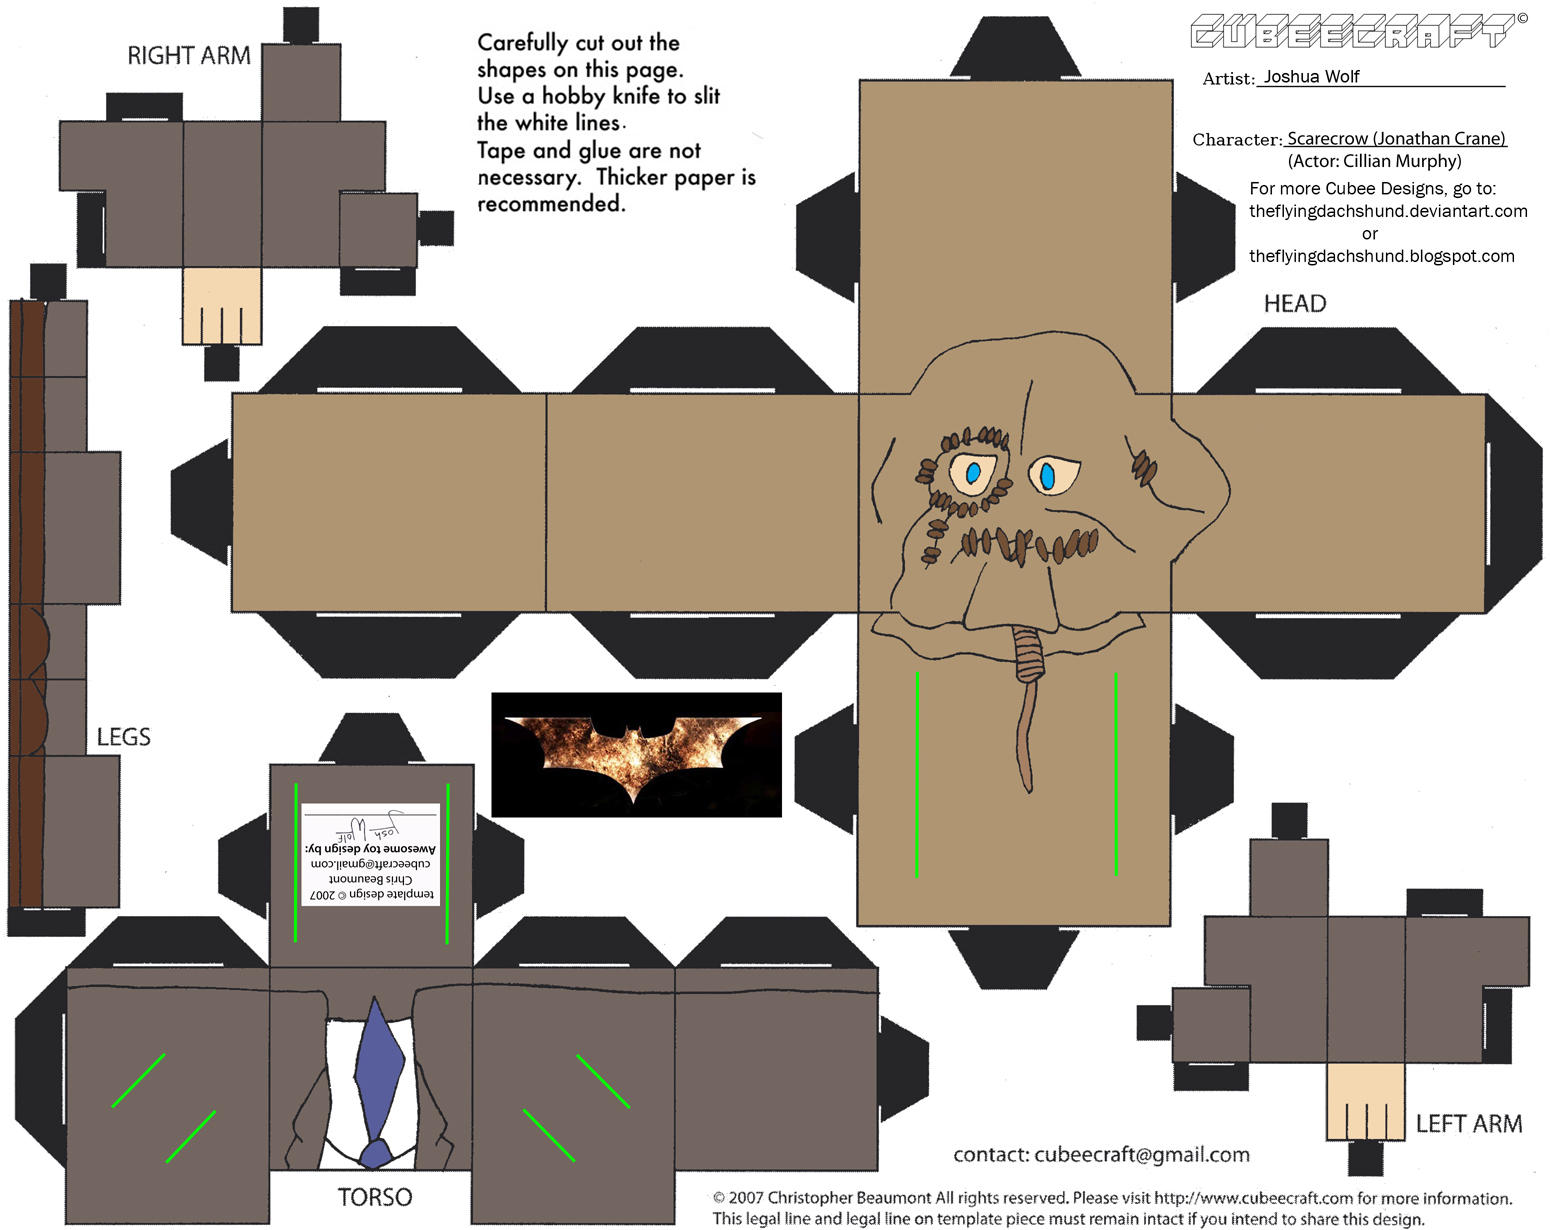 Dcf5 Scarecrow Cubee By Theflyingdachshund On Deviantart